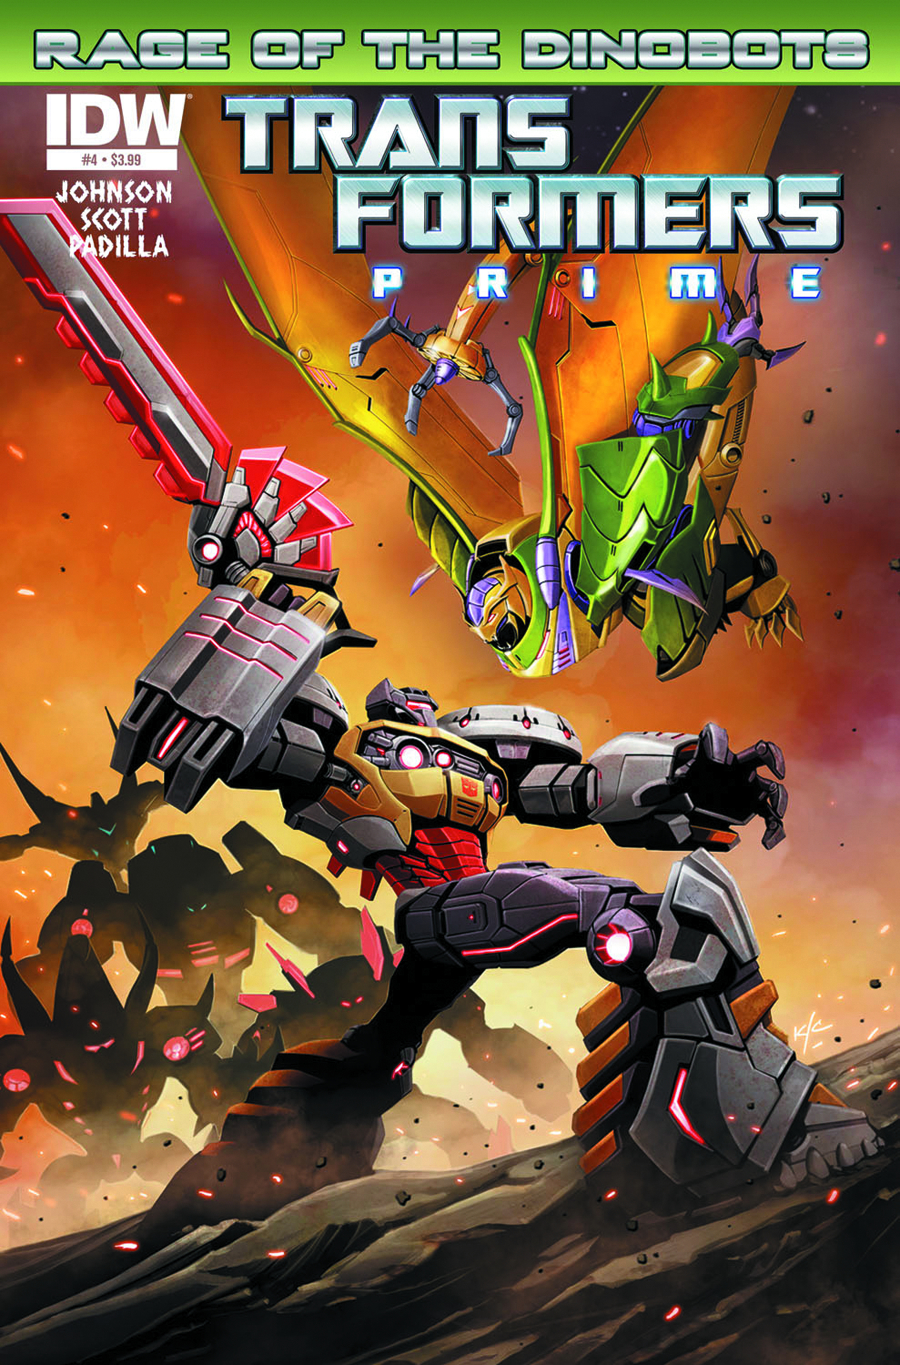 TRANSFORMERS PRIME RAGE O/T DINOBOTS #4